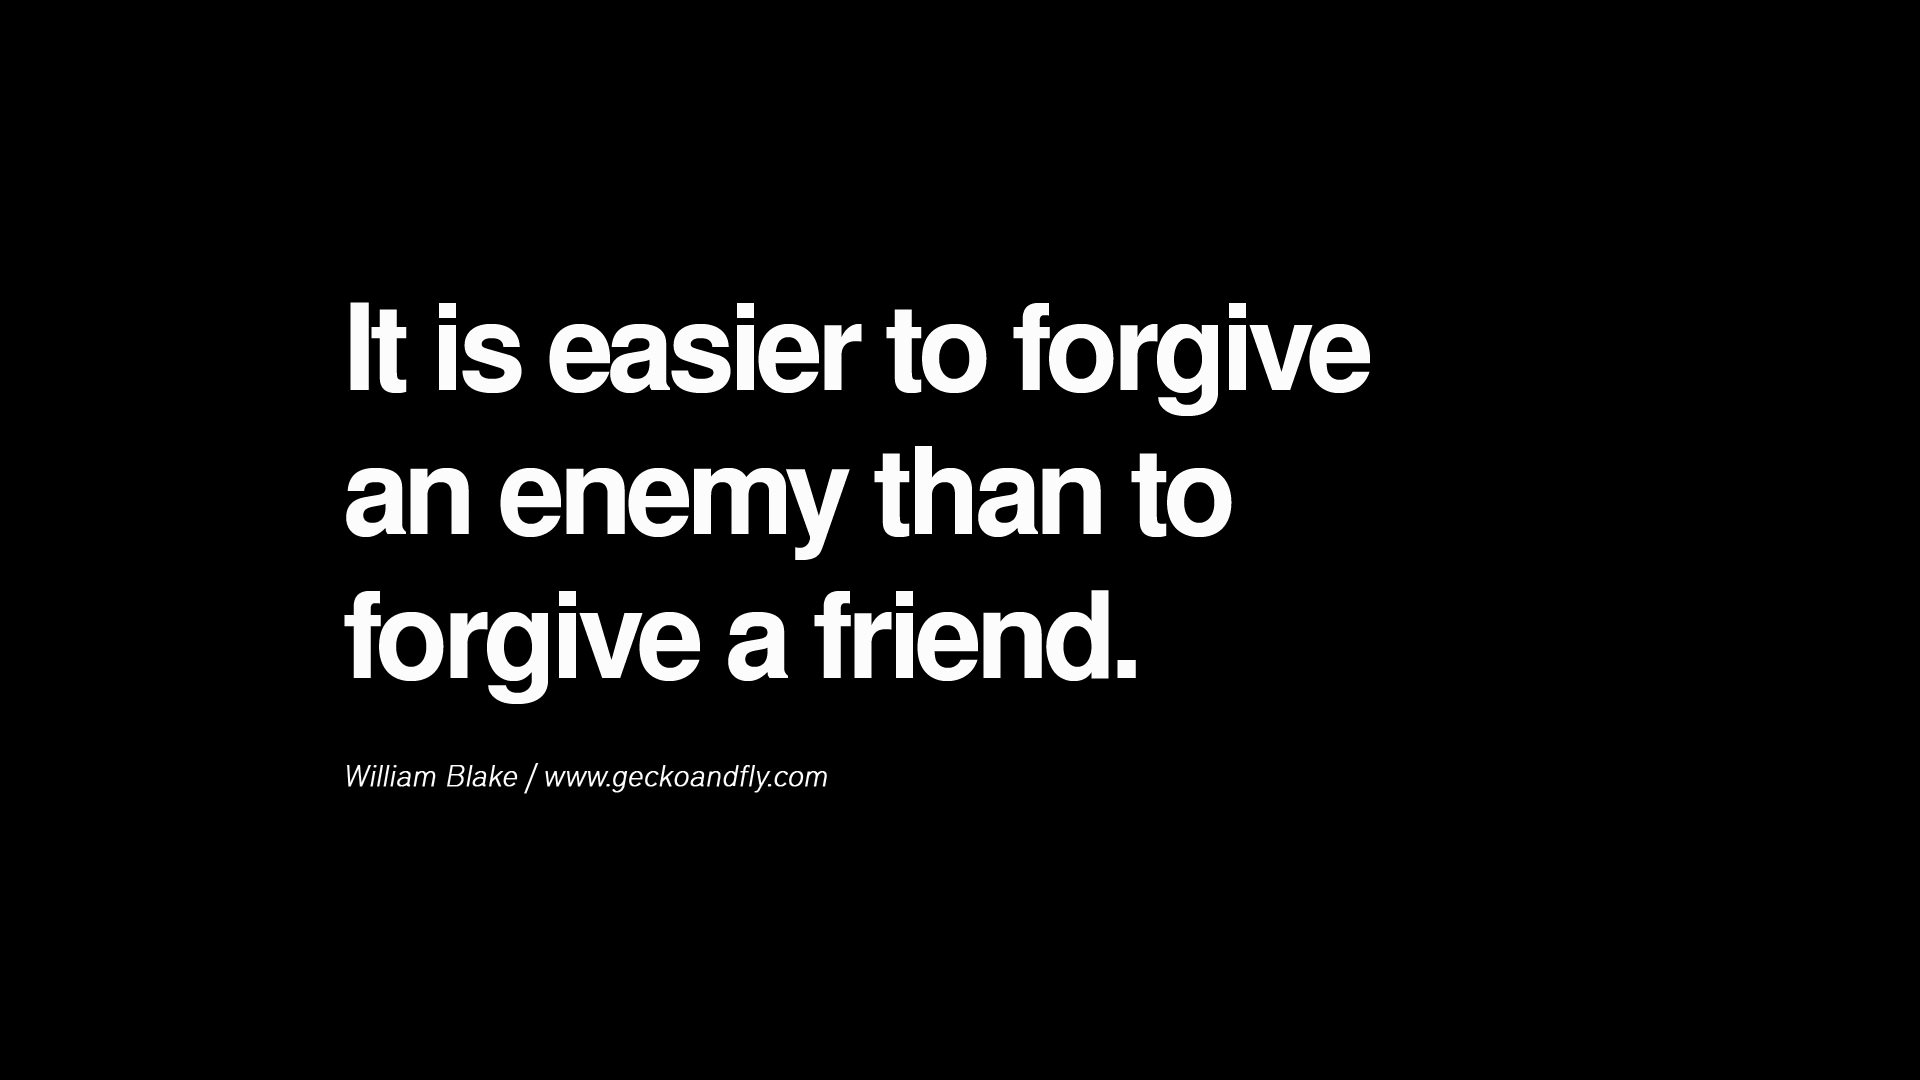 Funny Pictures Gallery Betrayal Quotes Betray Quotes: Famous Quotes About Friend Betrayal. QuotesGram